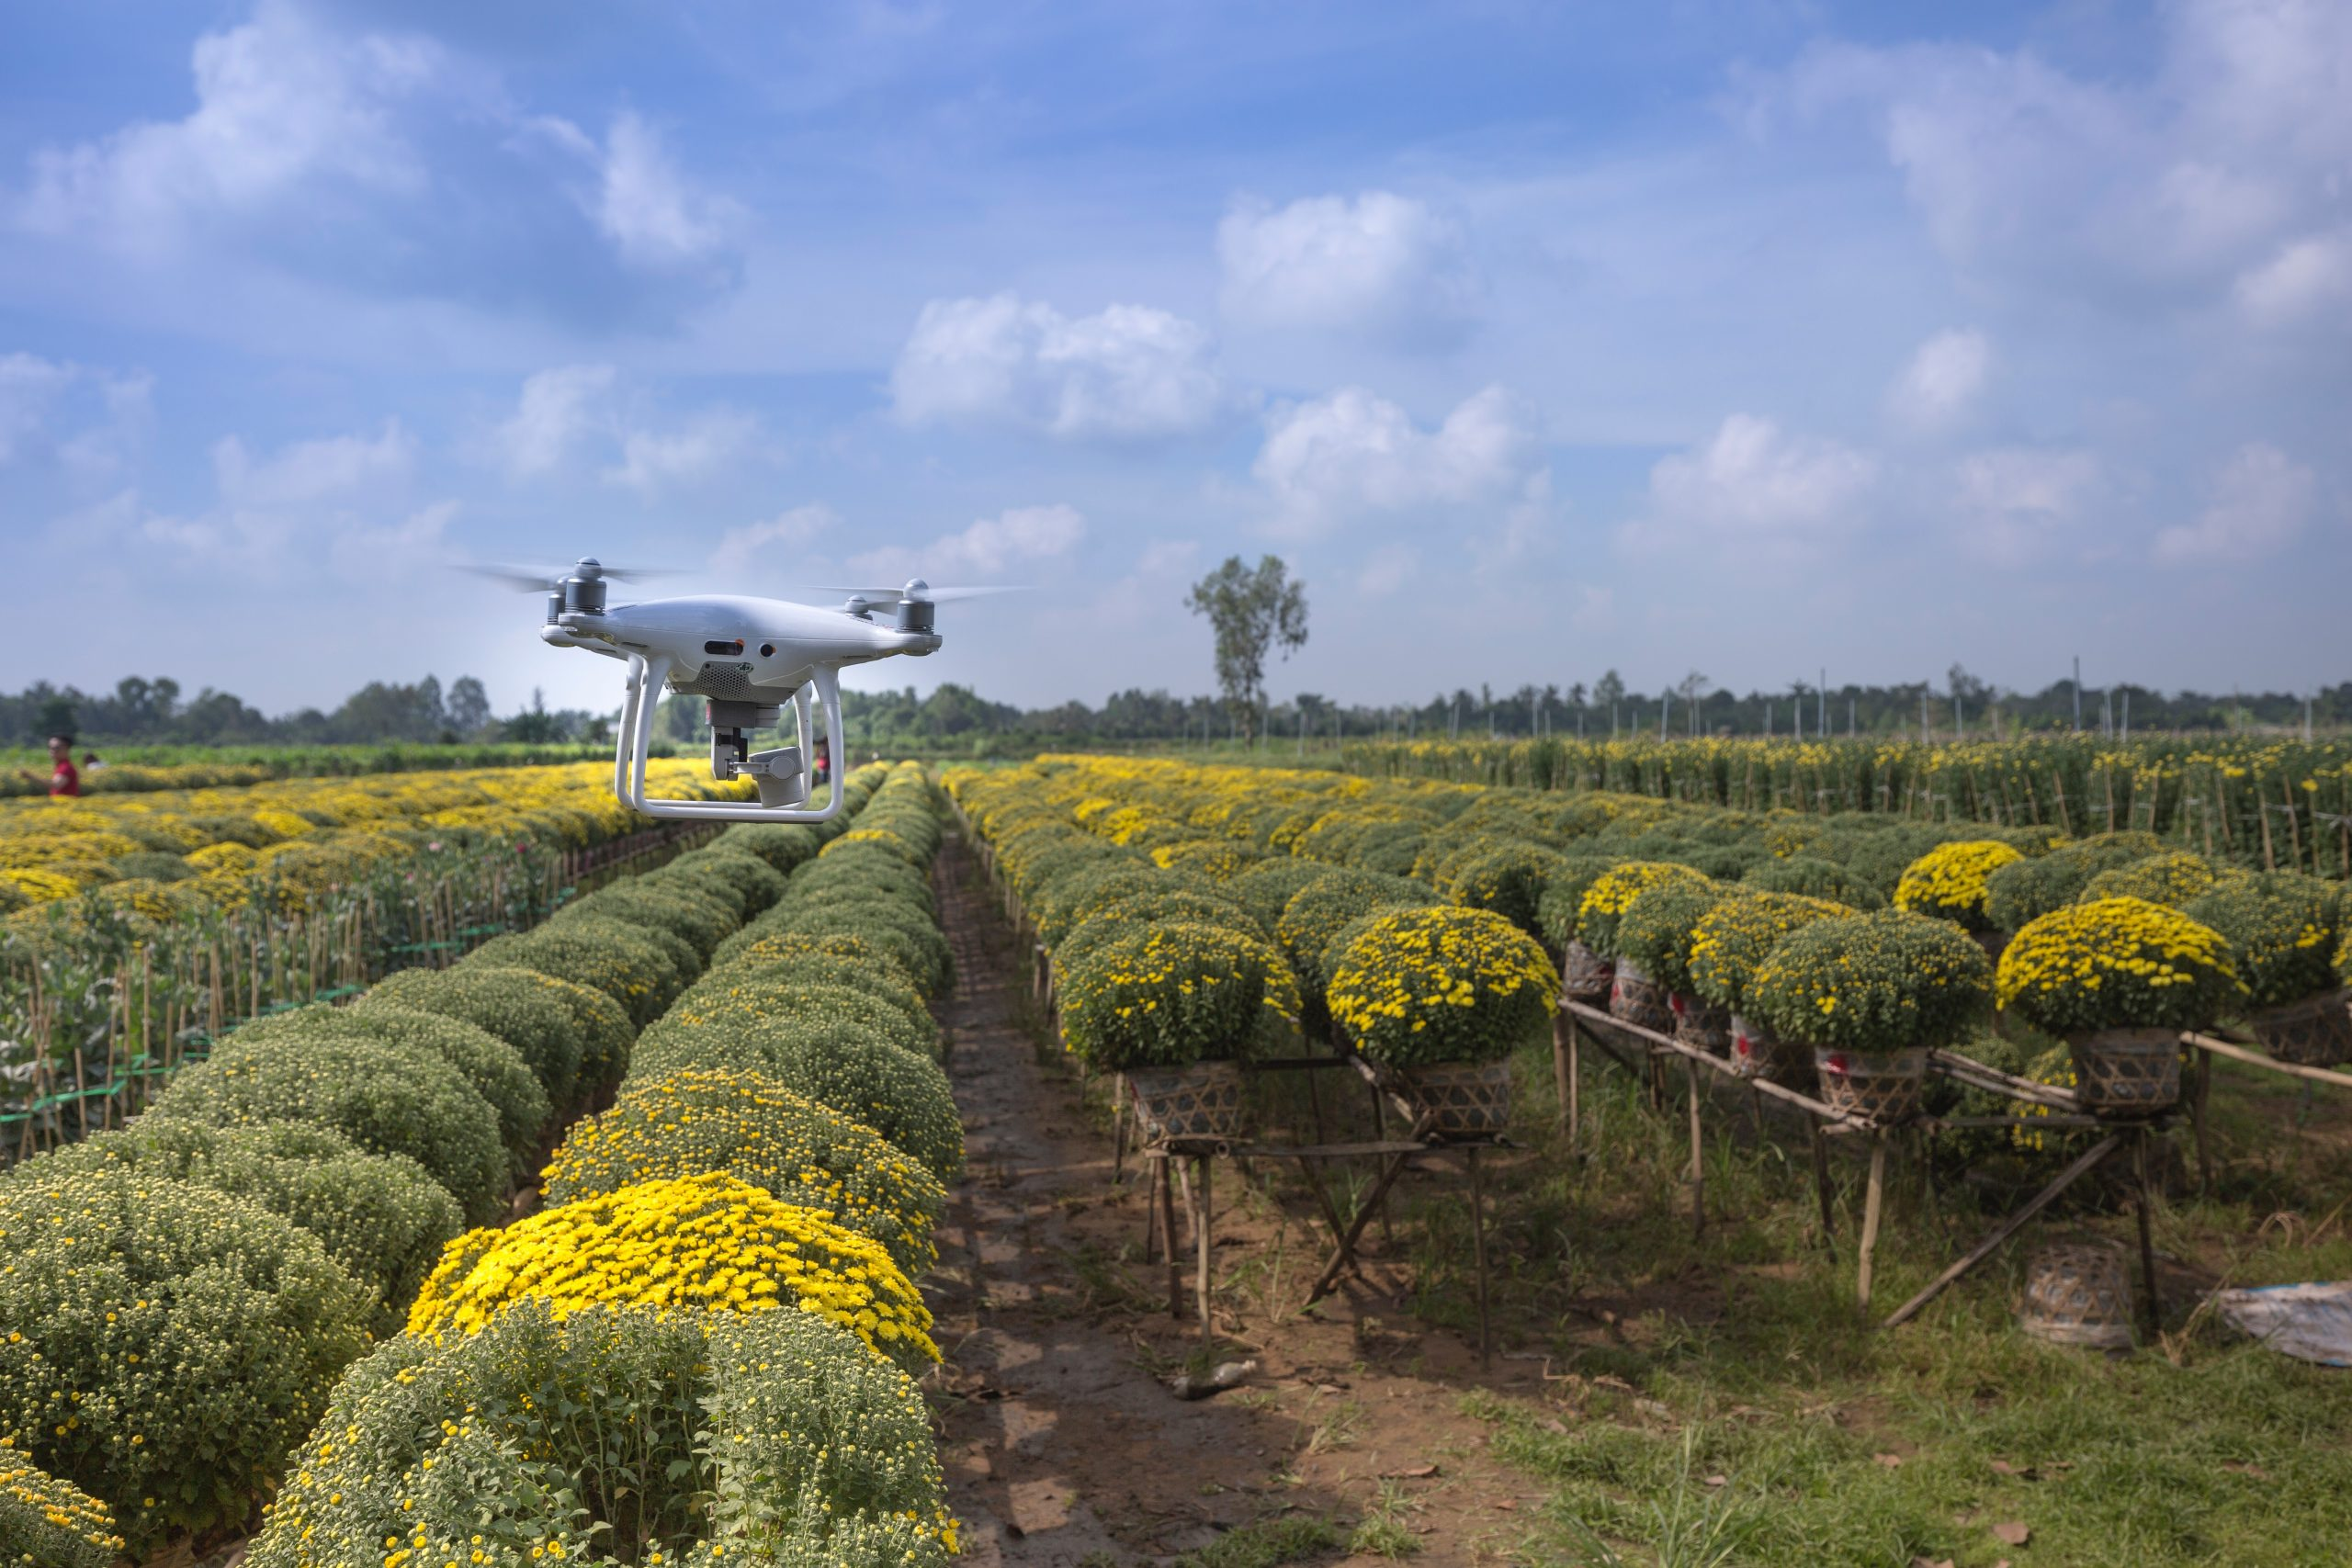 Make your landscaping and farming using innovative technology